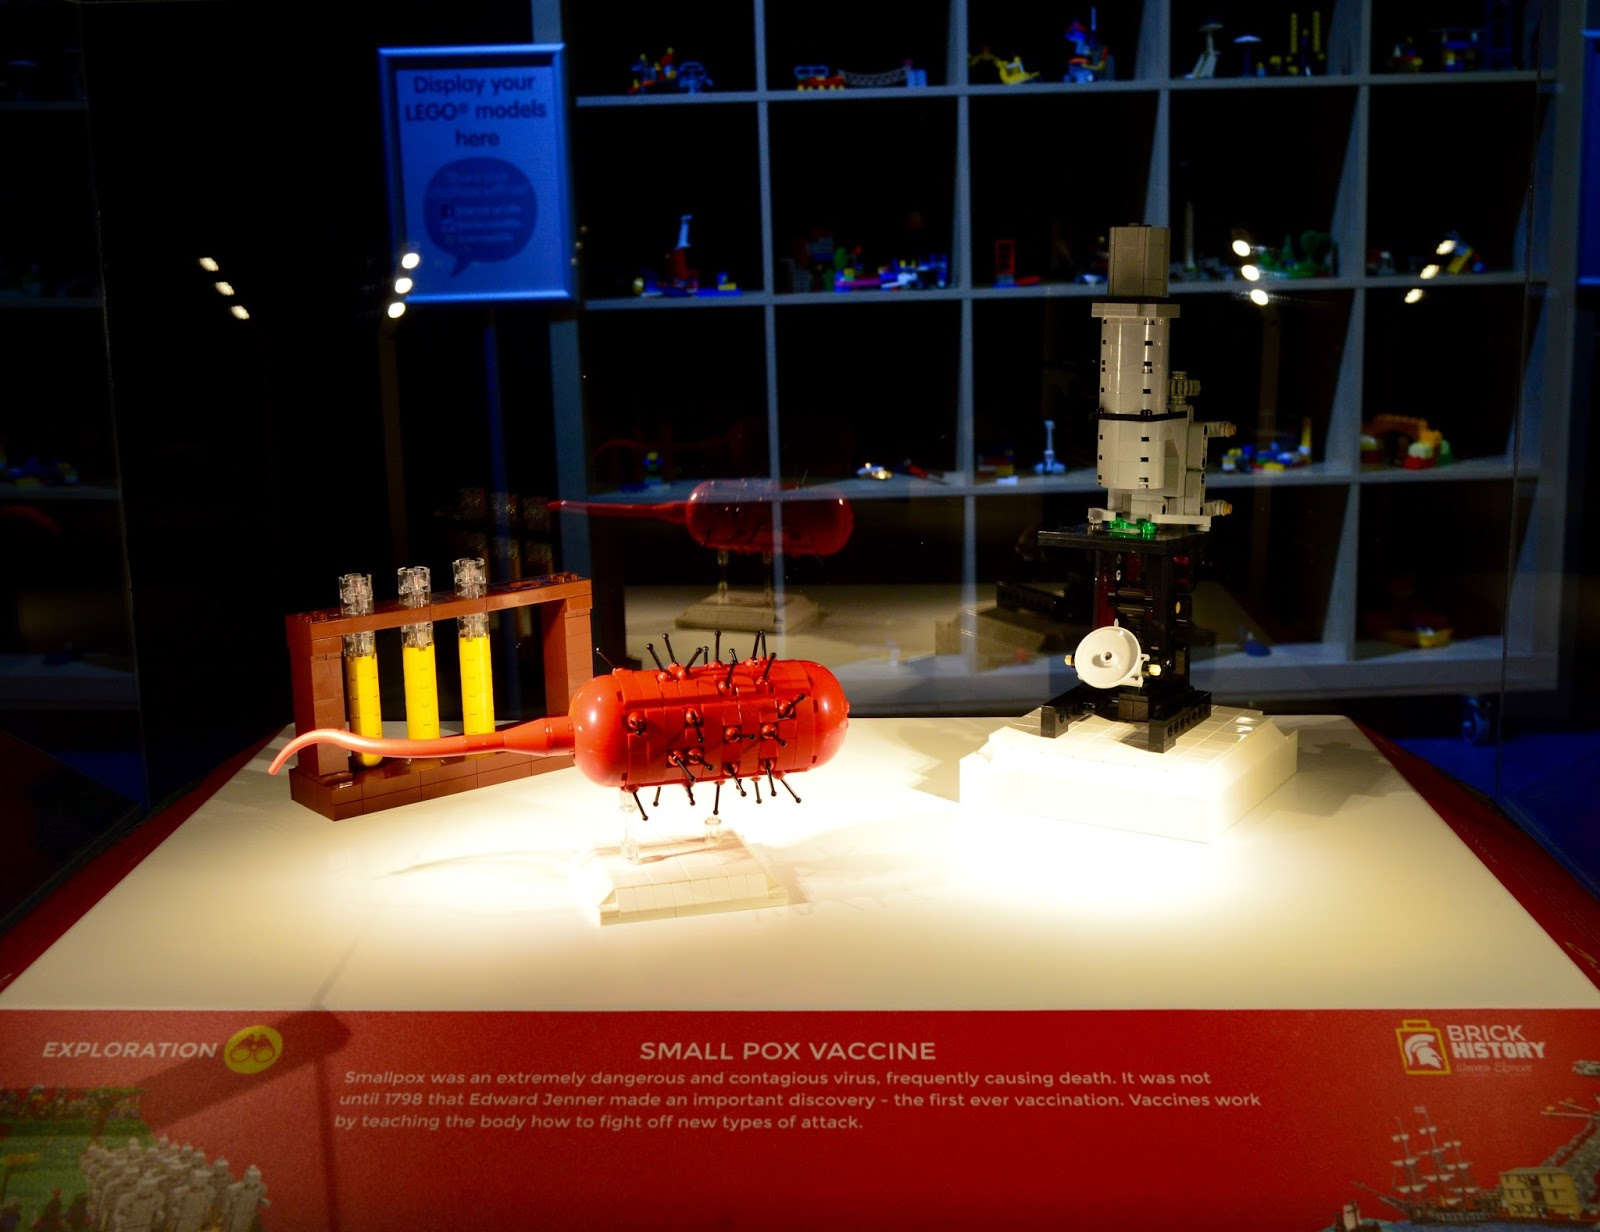 Brick History & North East Landmarks | New Lego Exhibitions at Life Science Centre, Newcastle | A Review - the small pox vaccine